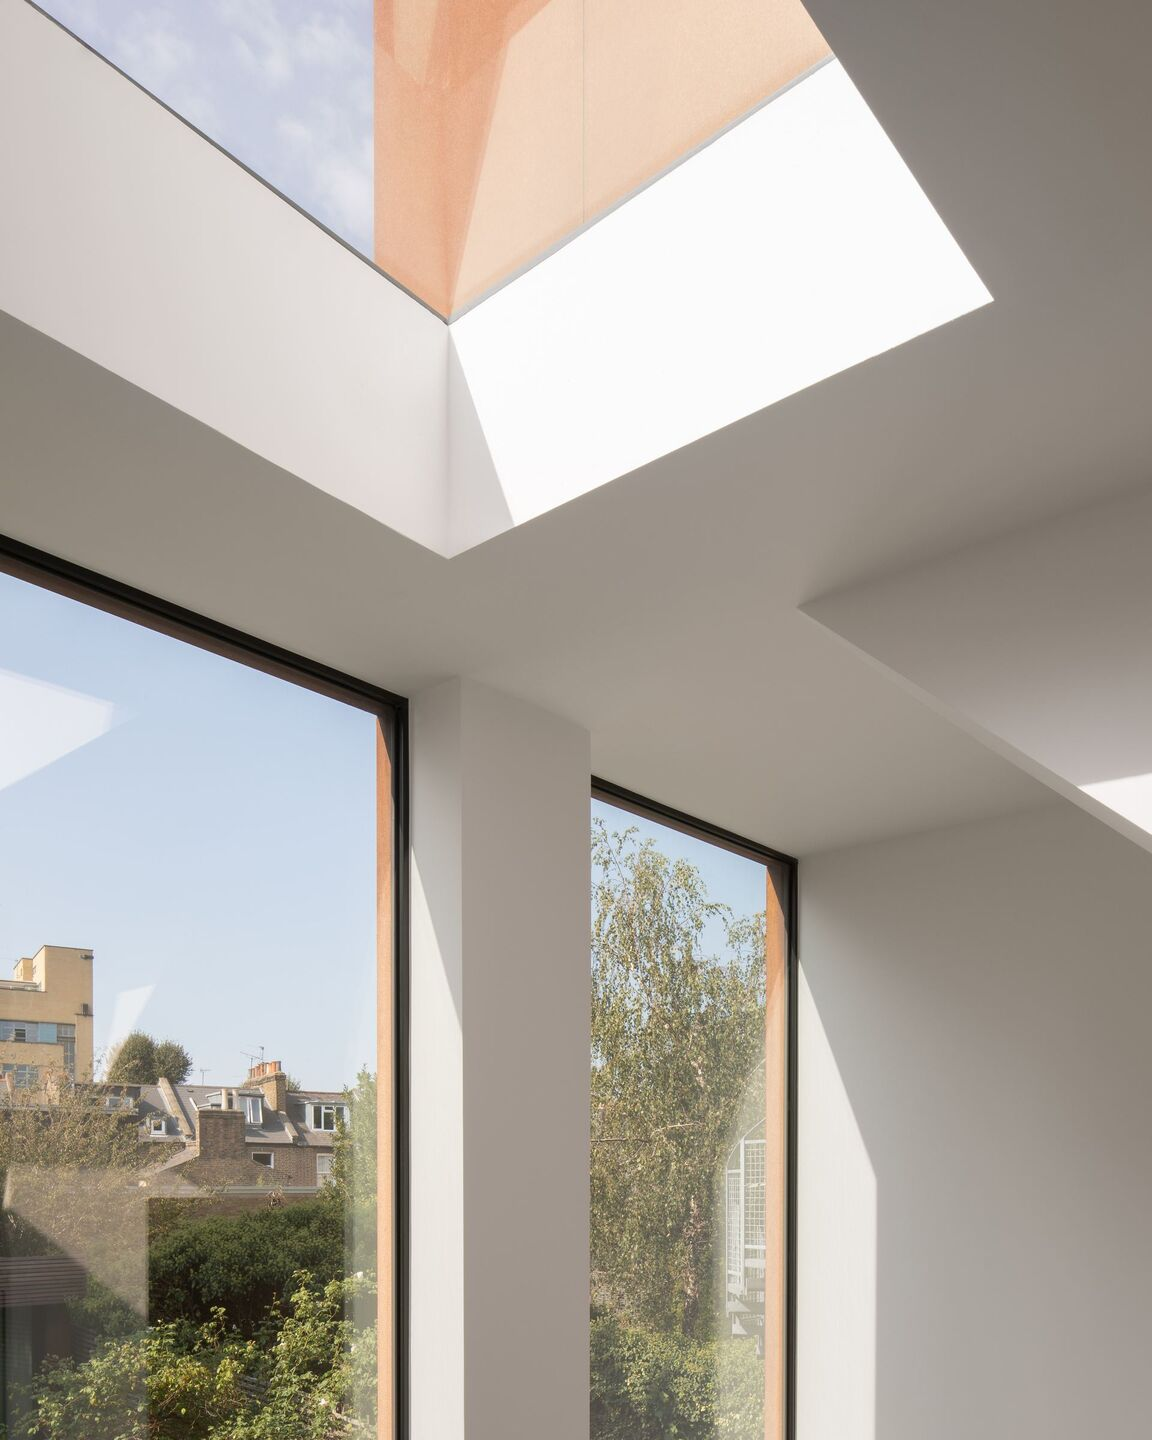 frameless windows and rooflight